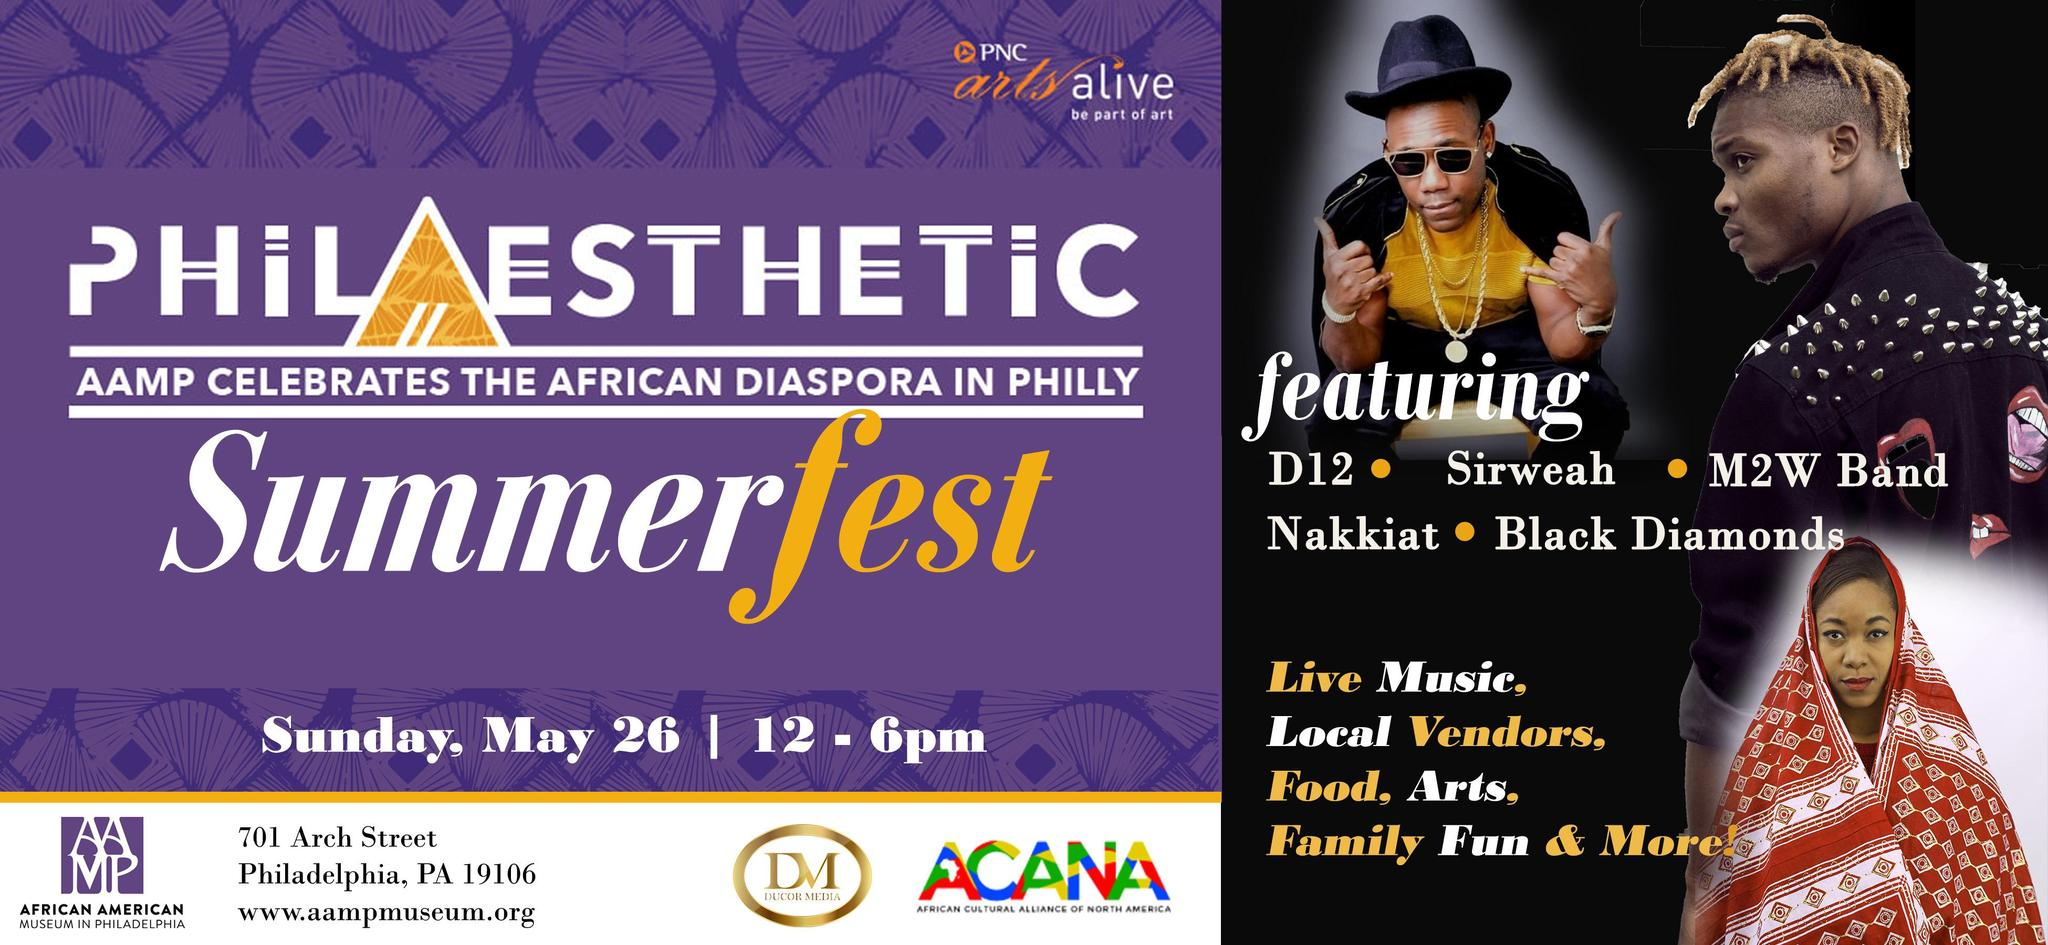 PhilAesthetic Summerfest Banner